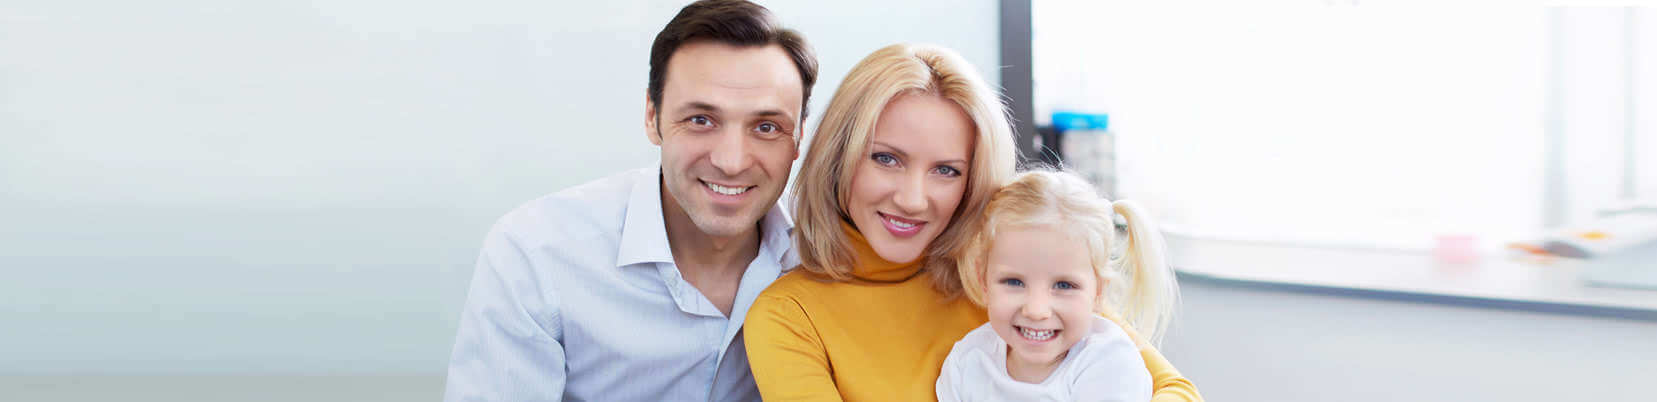 Paris Family Dental - Implant Dentistry